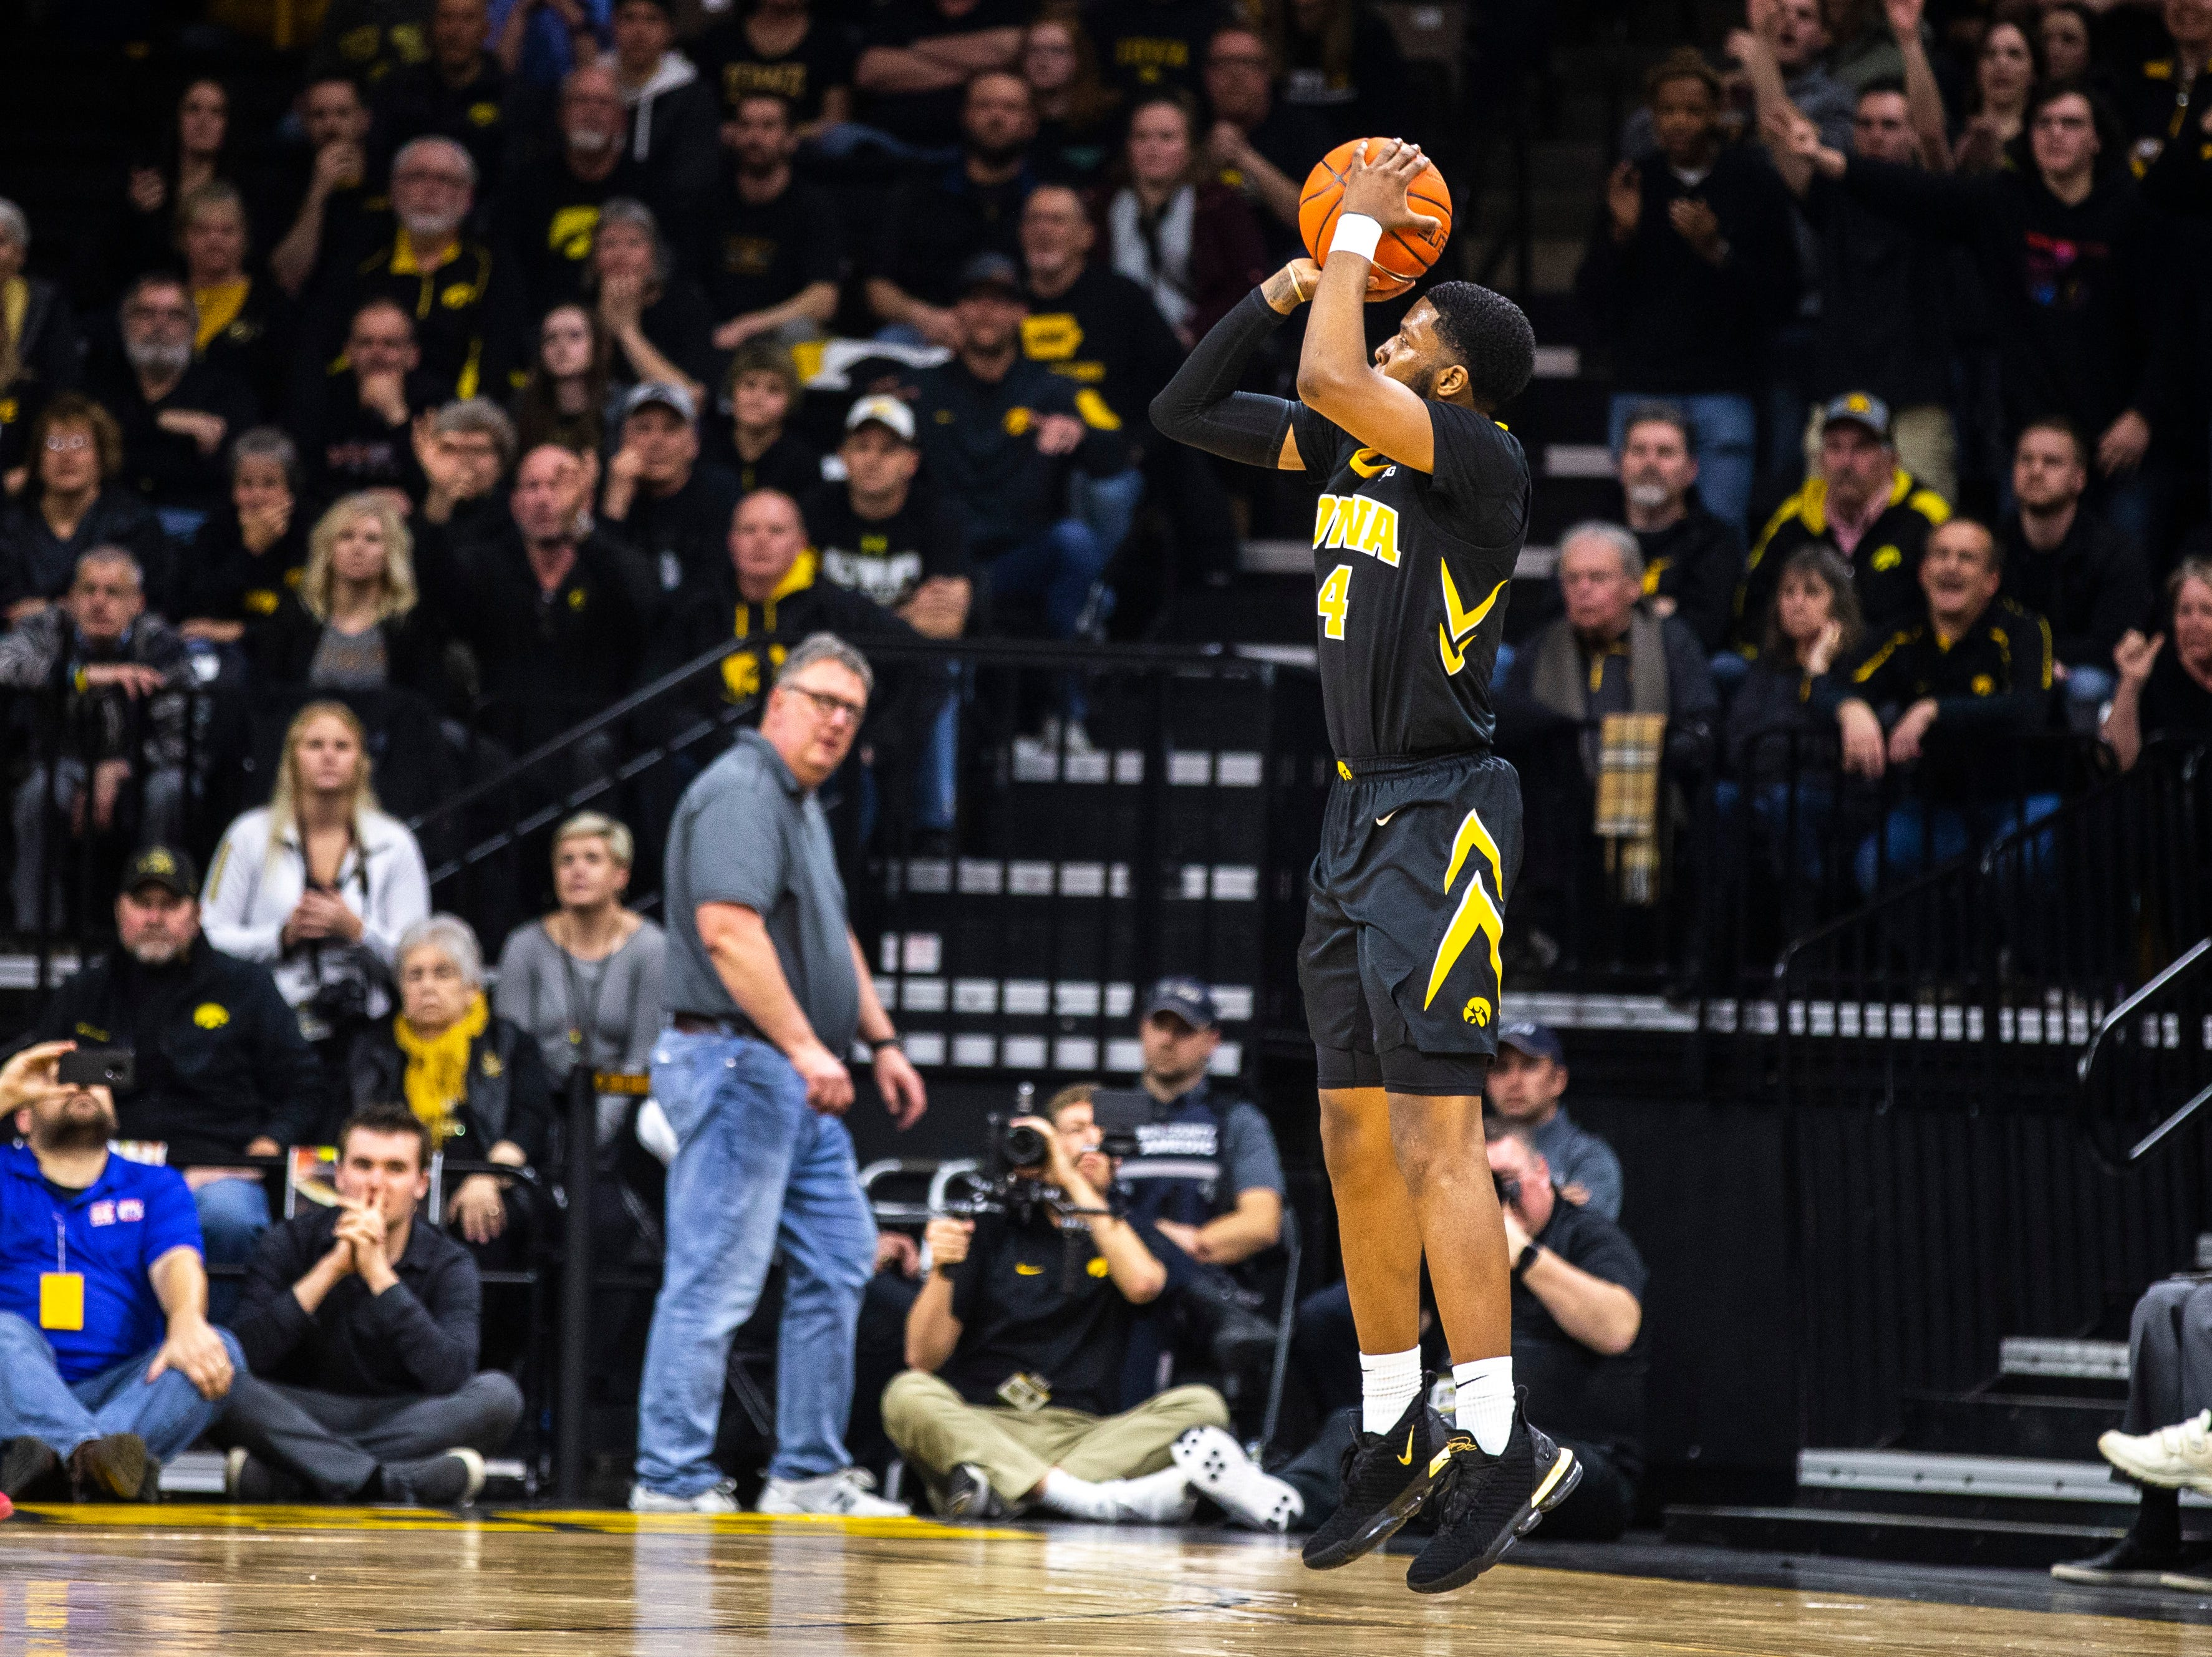 Iowa guard Isaiah Moss (4) attempts a 3-point basket during a NCAA Big Ten Conference men's basketball game on Friday, Feb. 22, 2019 at Carver-Hawkeye Arena in Iowa City, Iowa.